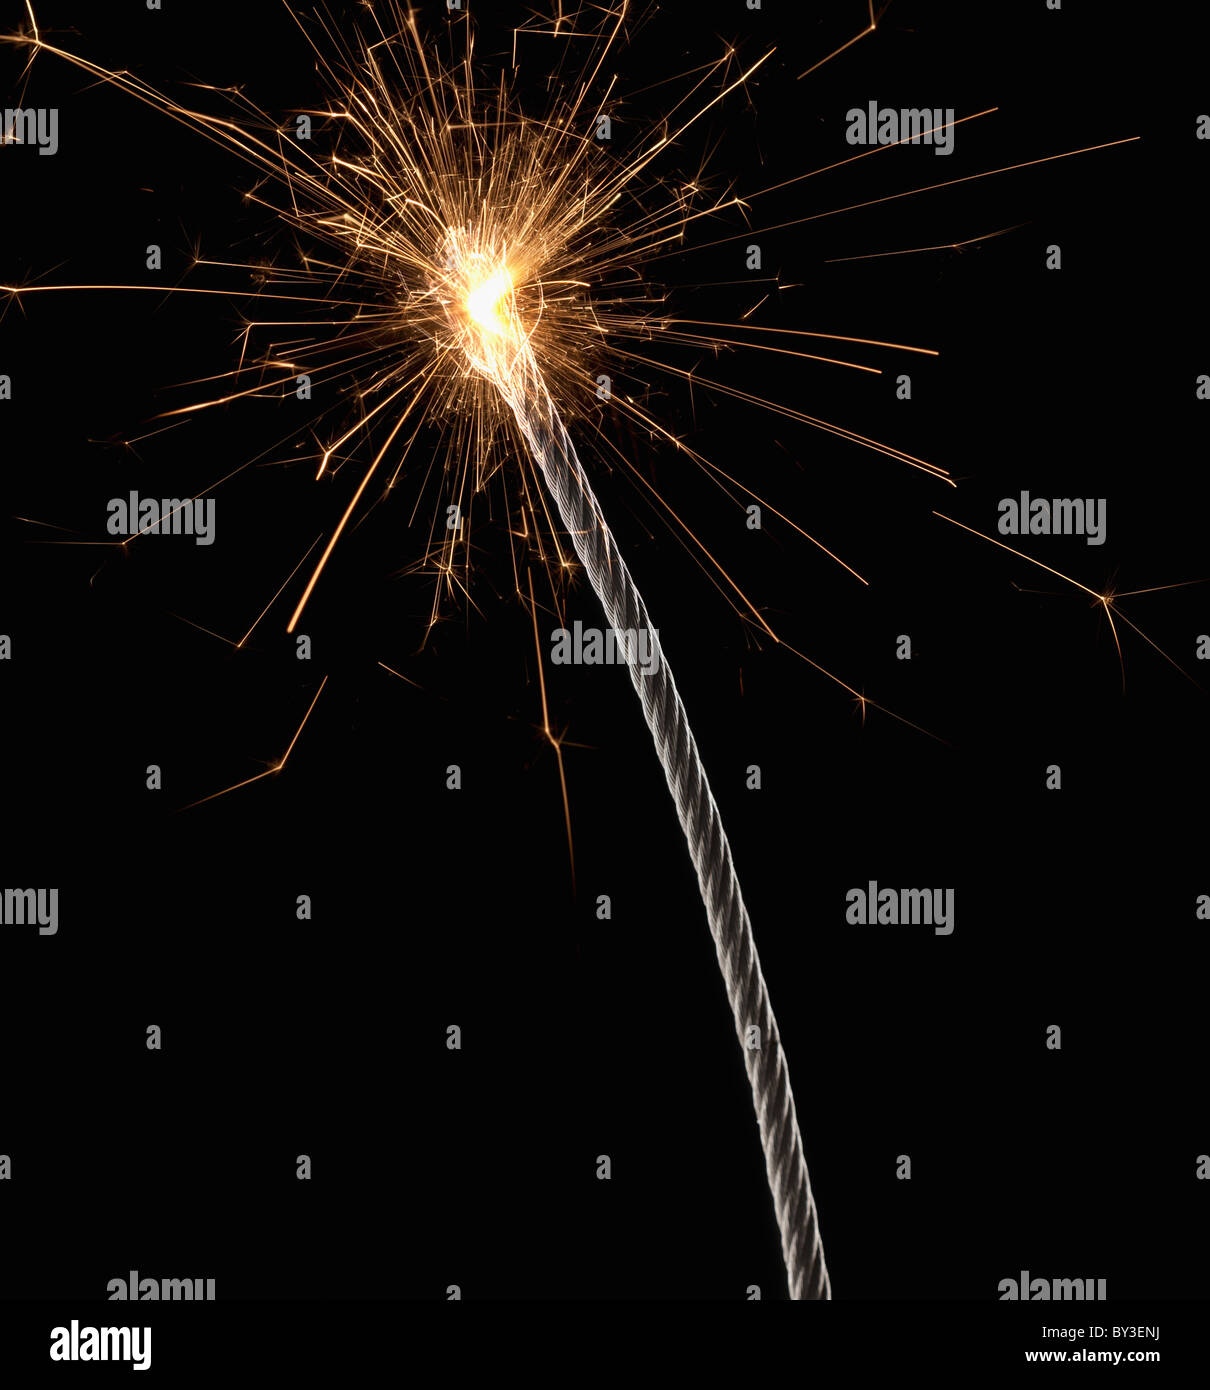 Burning wire, close-up - Stock Image